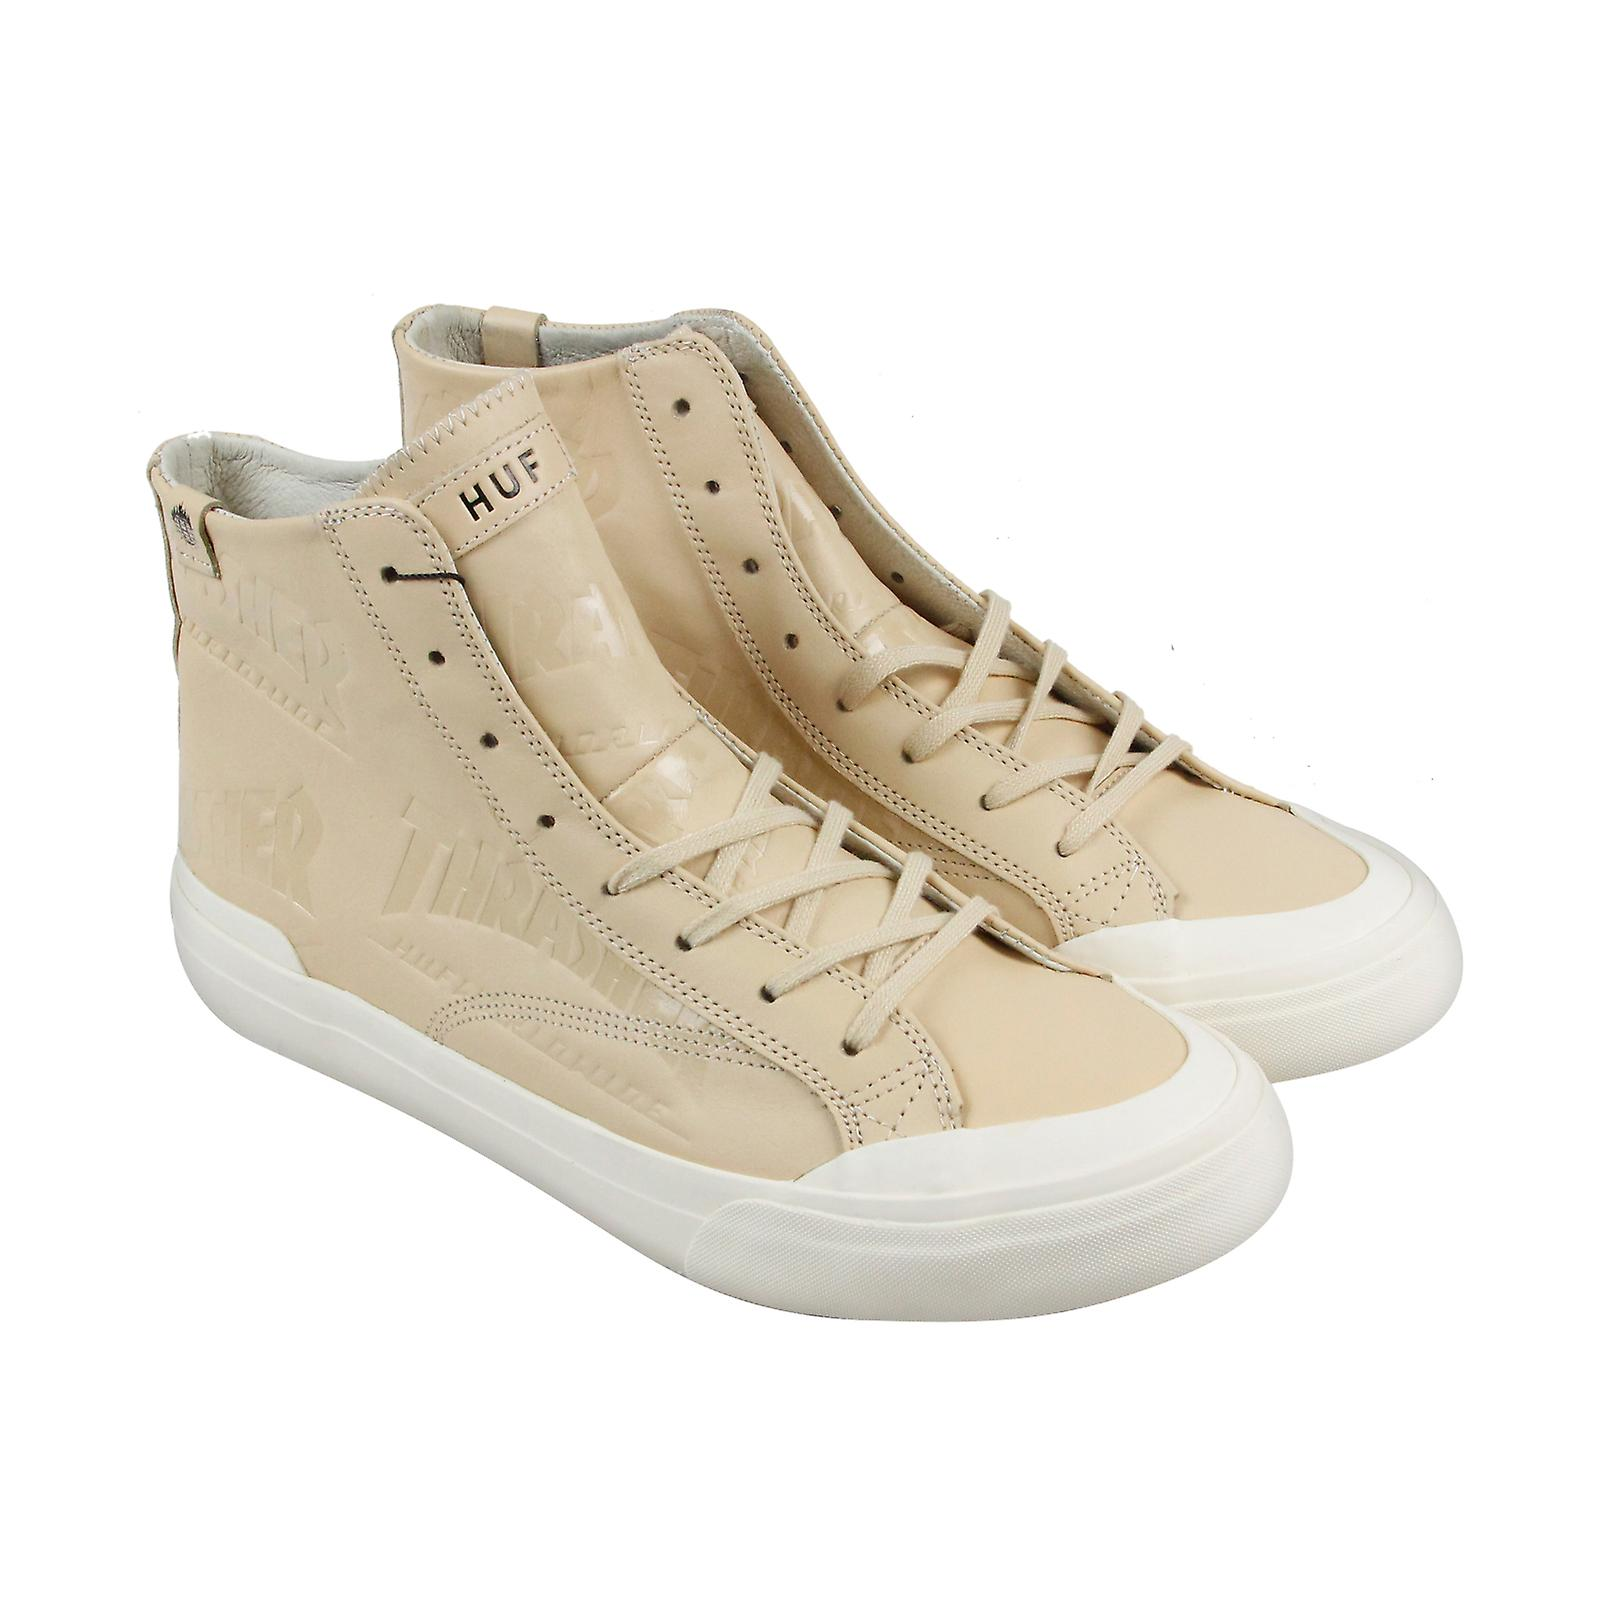 HUF X Thrasher Classic Ciao Top alta in pelle Mens Tan Lace Up scarpe da ginnastica